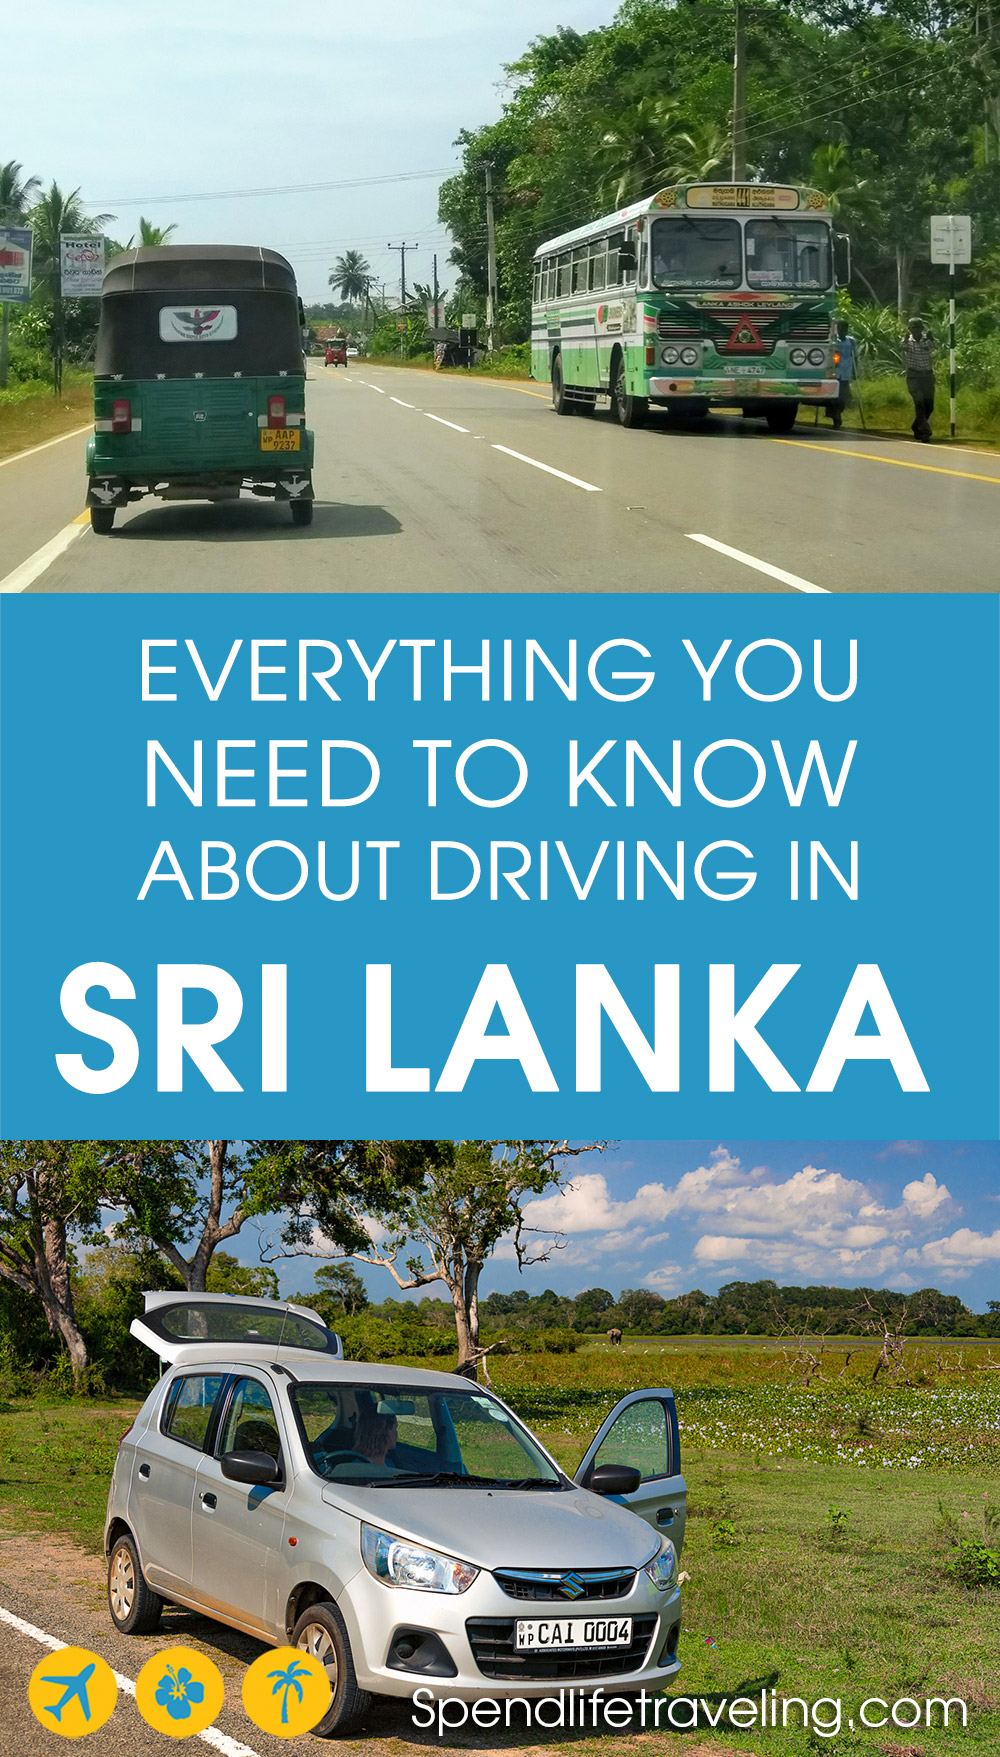 Are you thinking about renting a car and driving in Sri Lanka? This is everything you need to know! #SriLanka #drivingabroad #SriLankaroadtrip #travelSriLanka